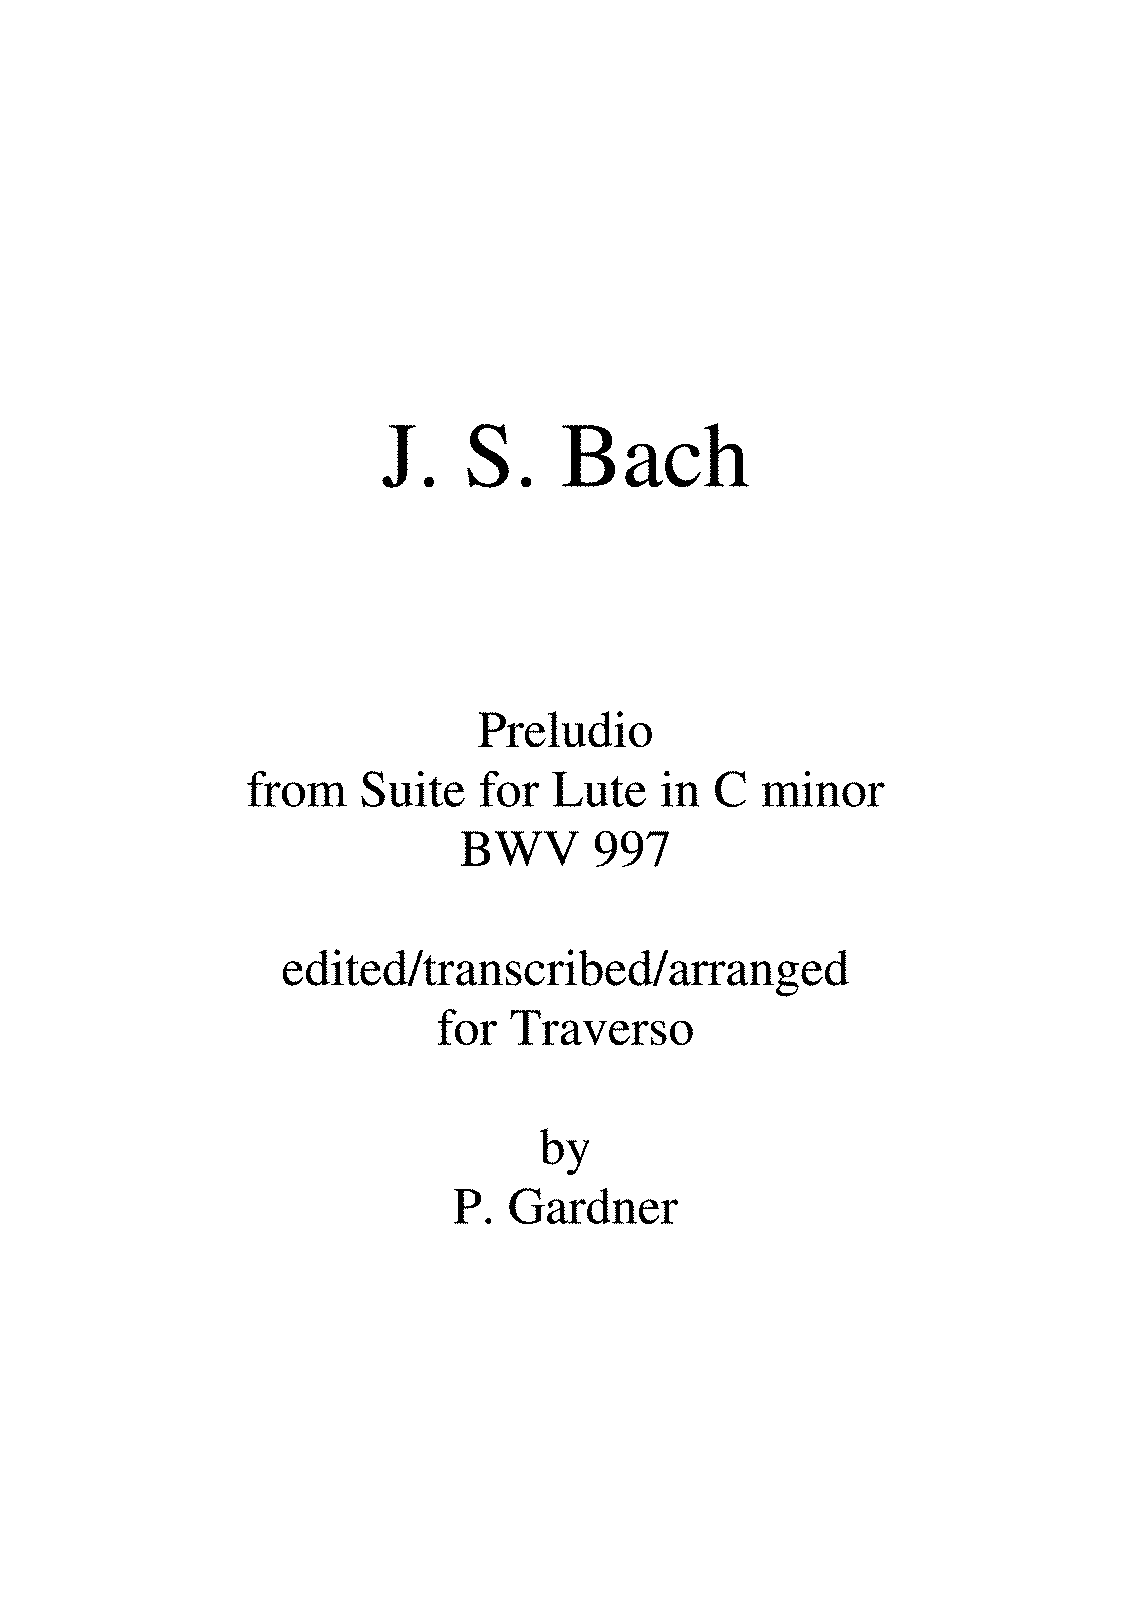 PMLP08790-Lute Suite - preludio BWV0997 arr for Traverso pdf.pdf